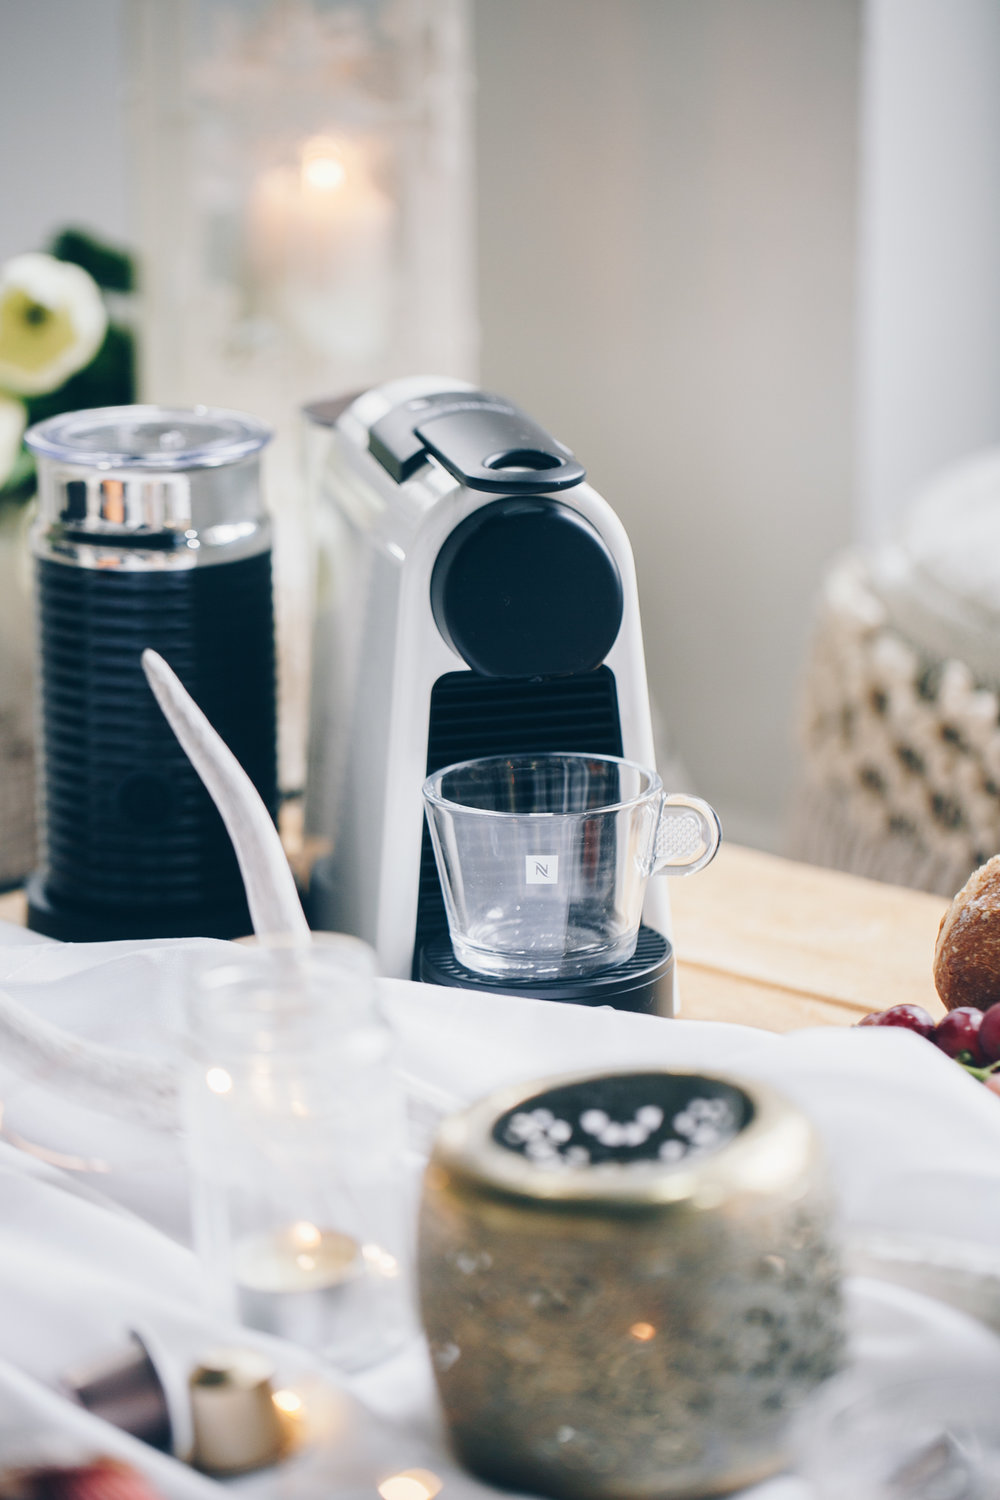 Love the Aeroccino milk frother!